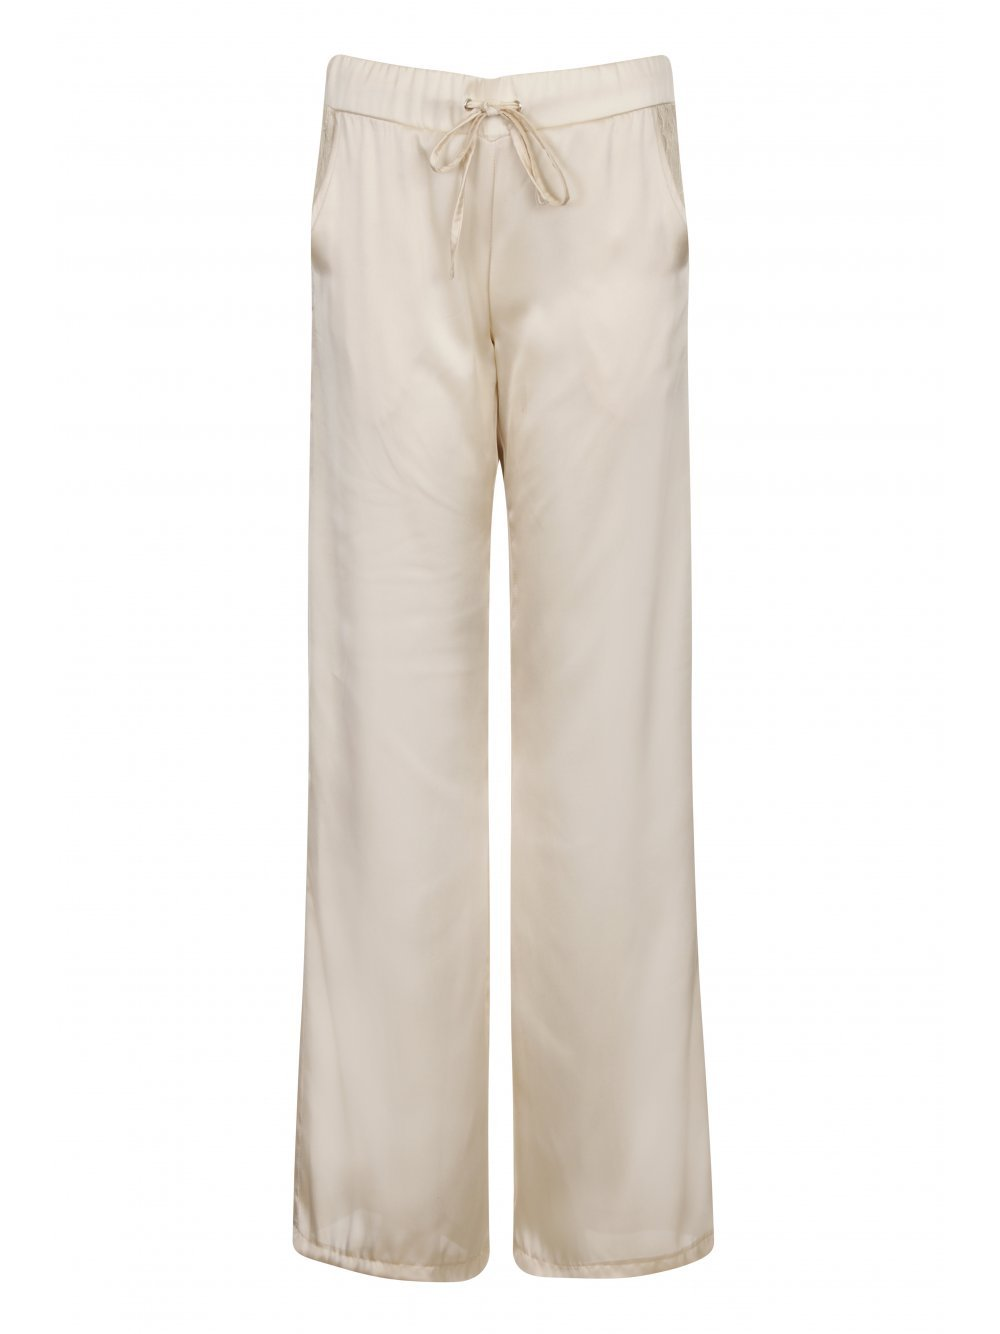 Champagne Satin Lace Pocket Pyjama Trousers